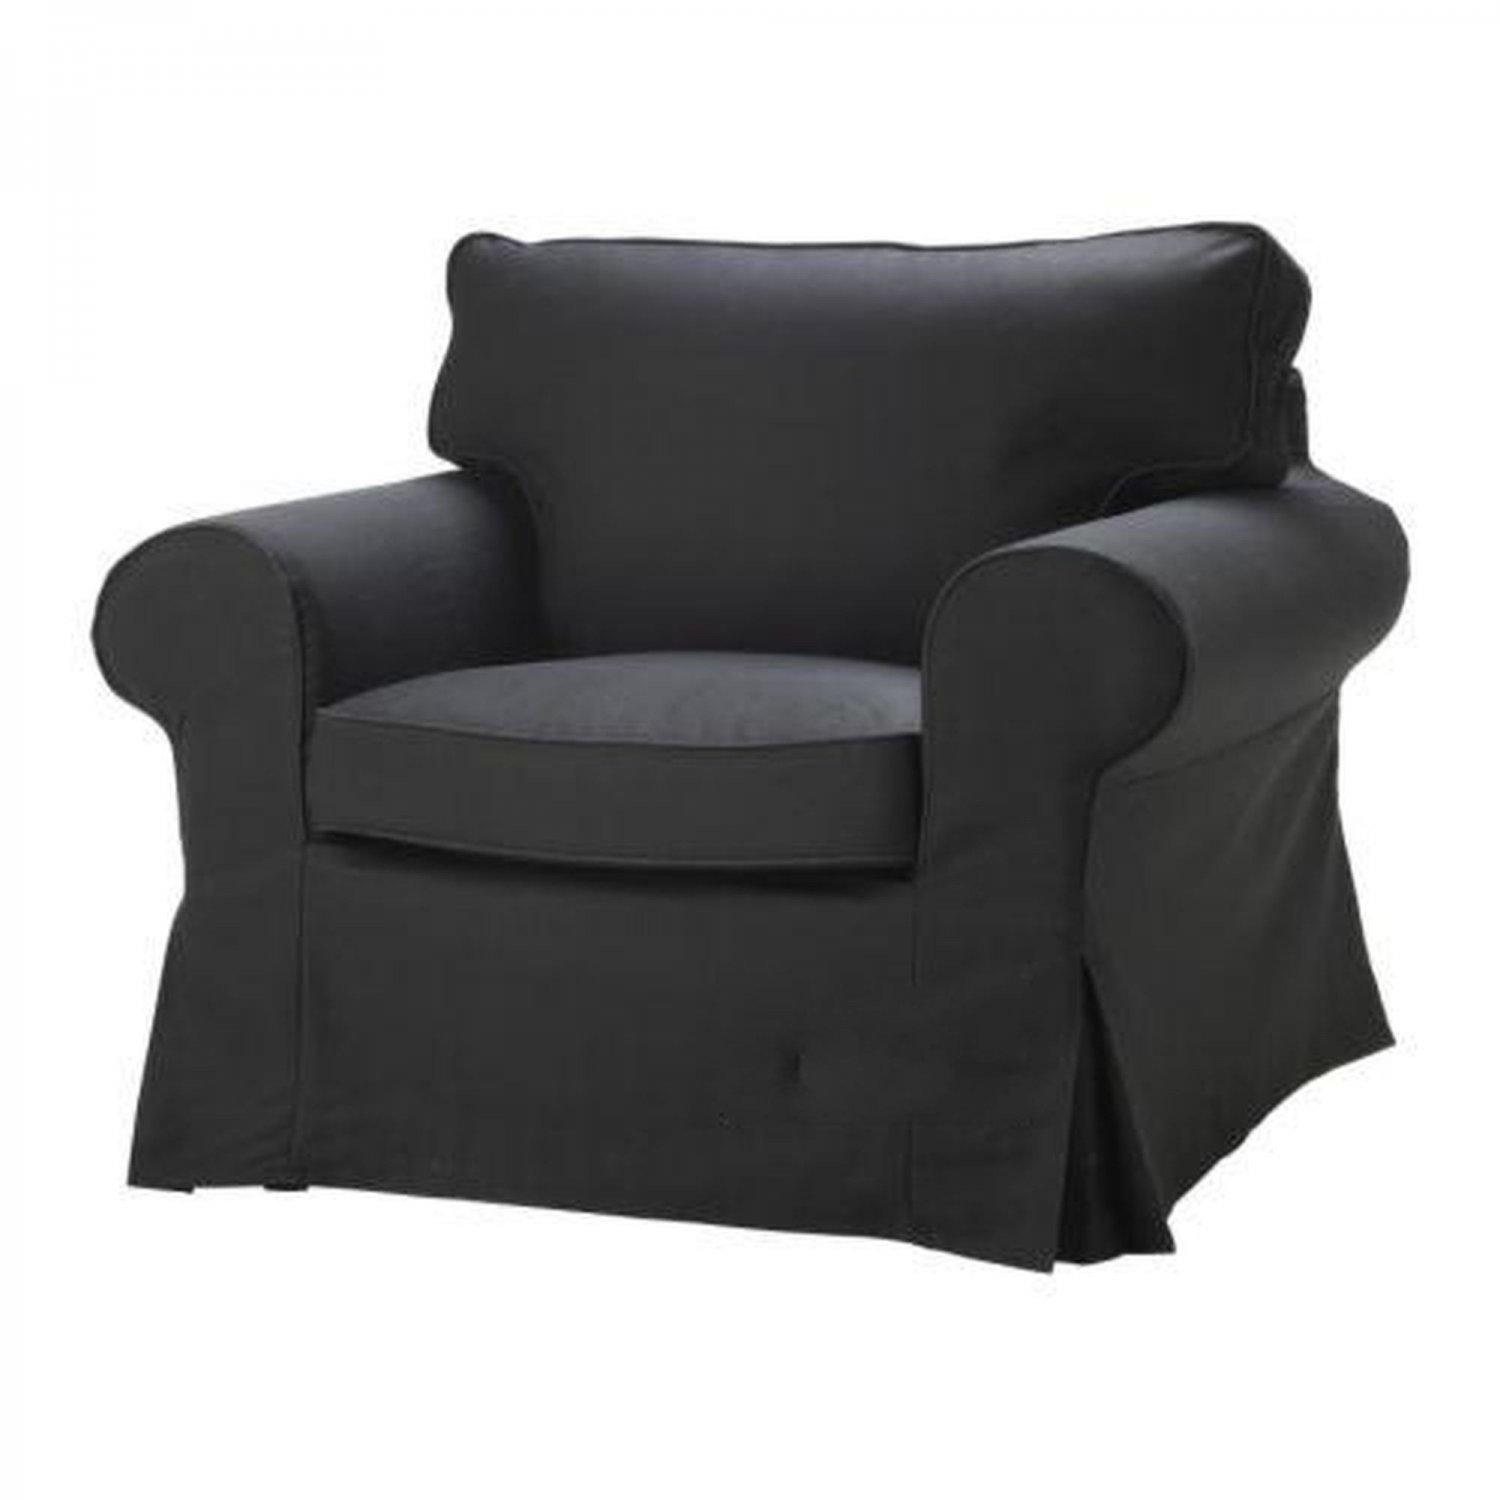 sex chairs suppliers chair cover rentals montgomery al ikea ektorp armchair slipcover idemo black